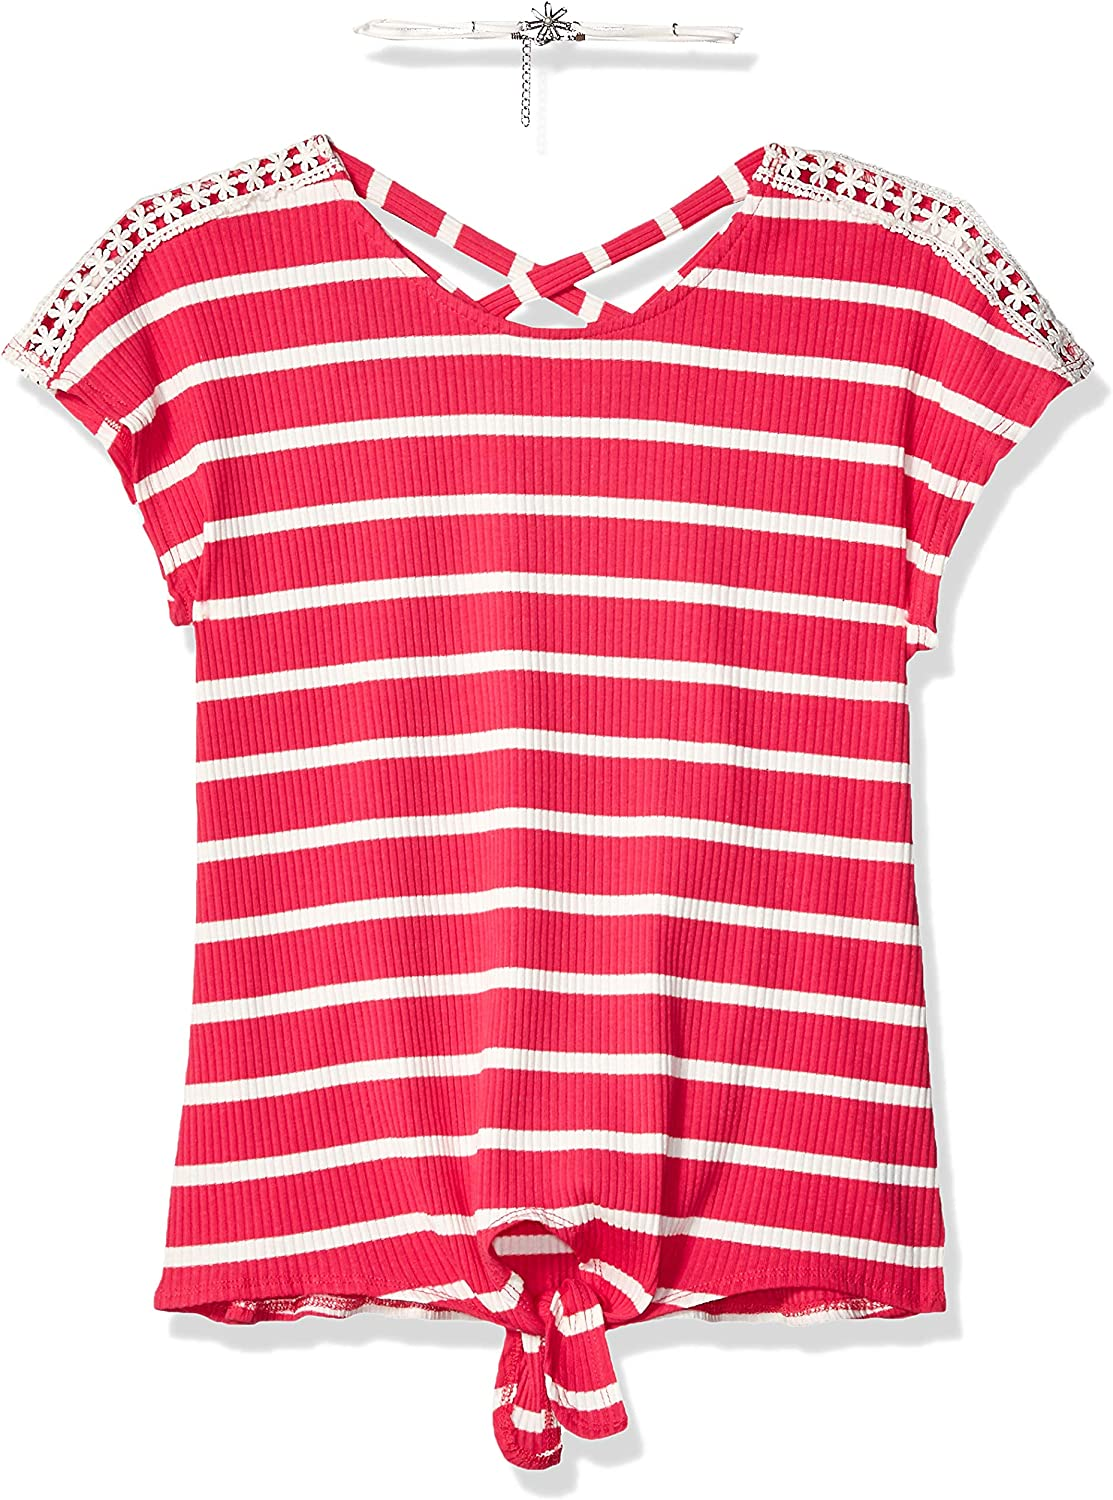 S Amy Byer Girls Short Sleeve Tie-Front Top Rainbow Pink//White Stripe